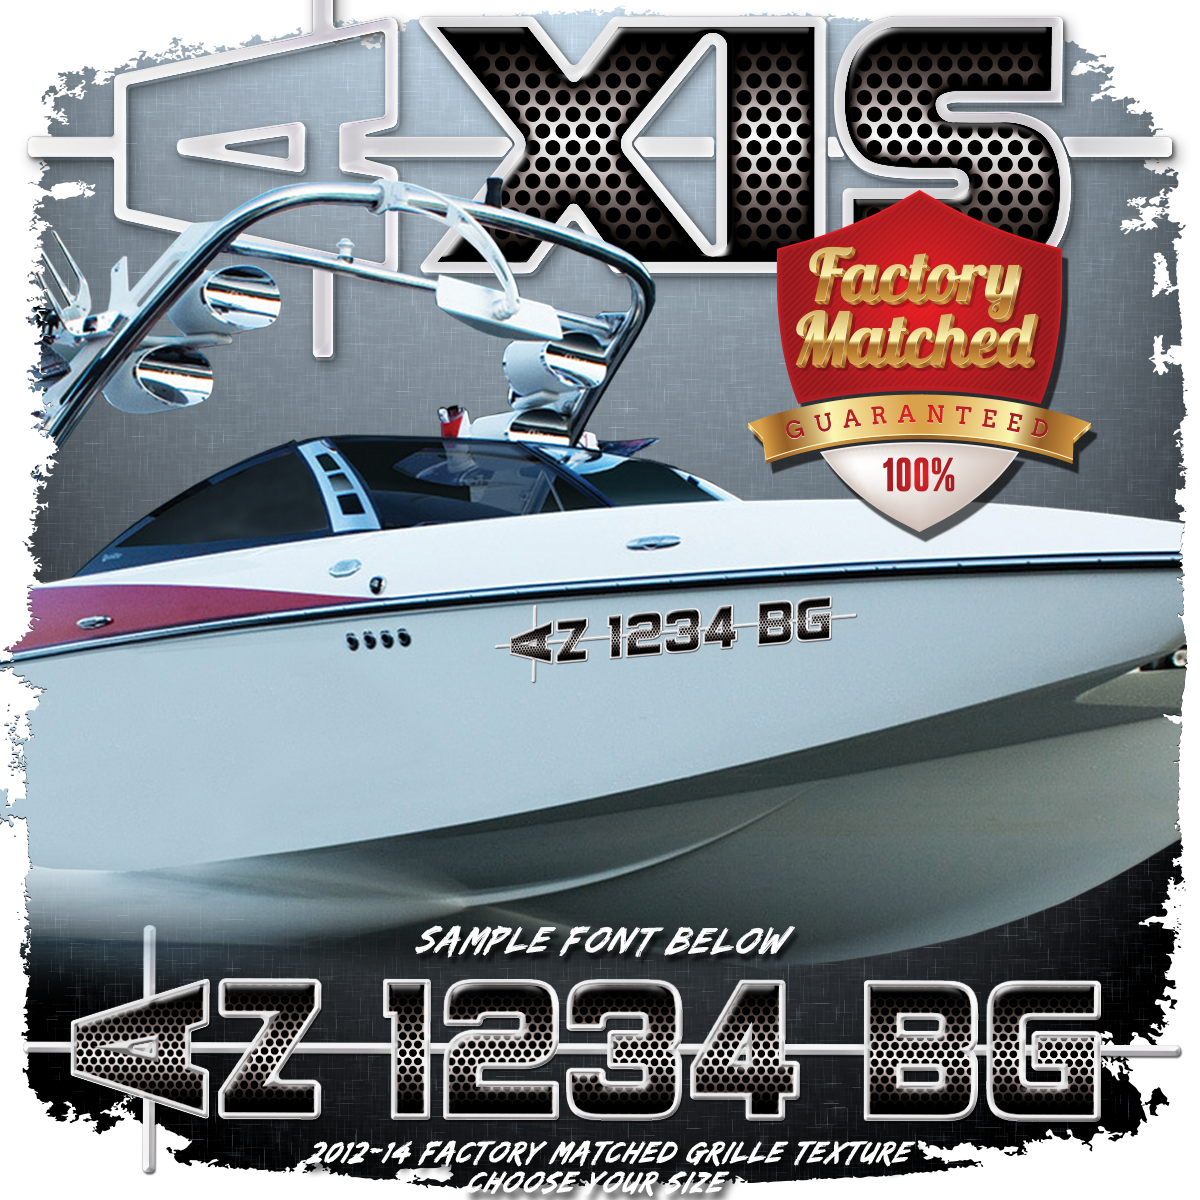 Axis 2012-14 Registration (2 included), Factory Matched Grill Pattern